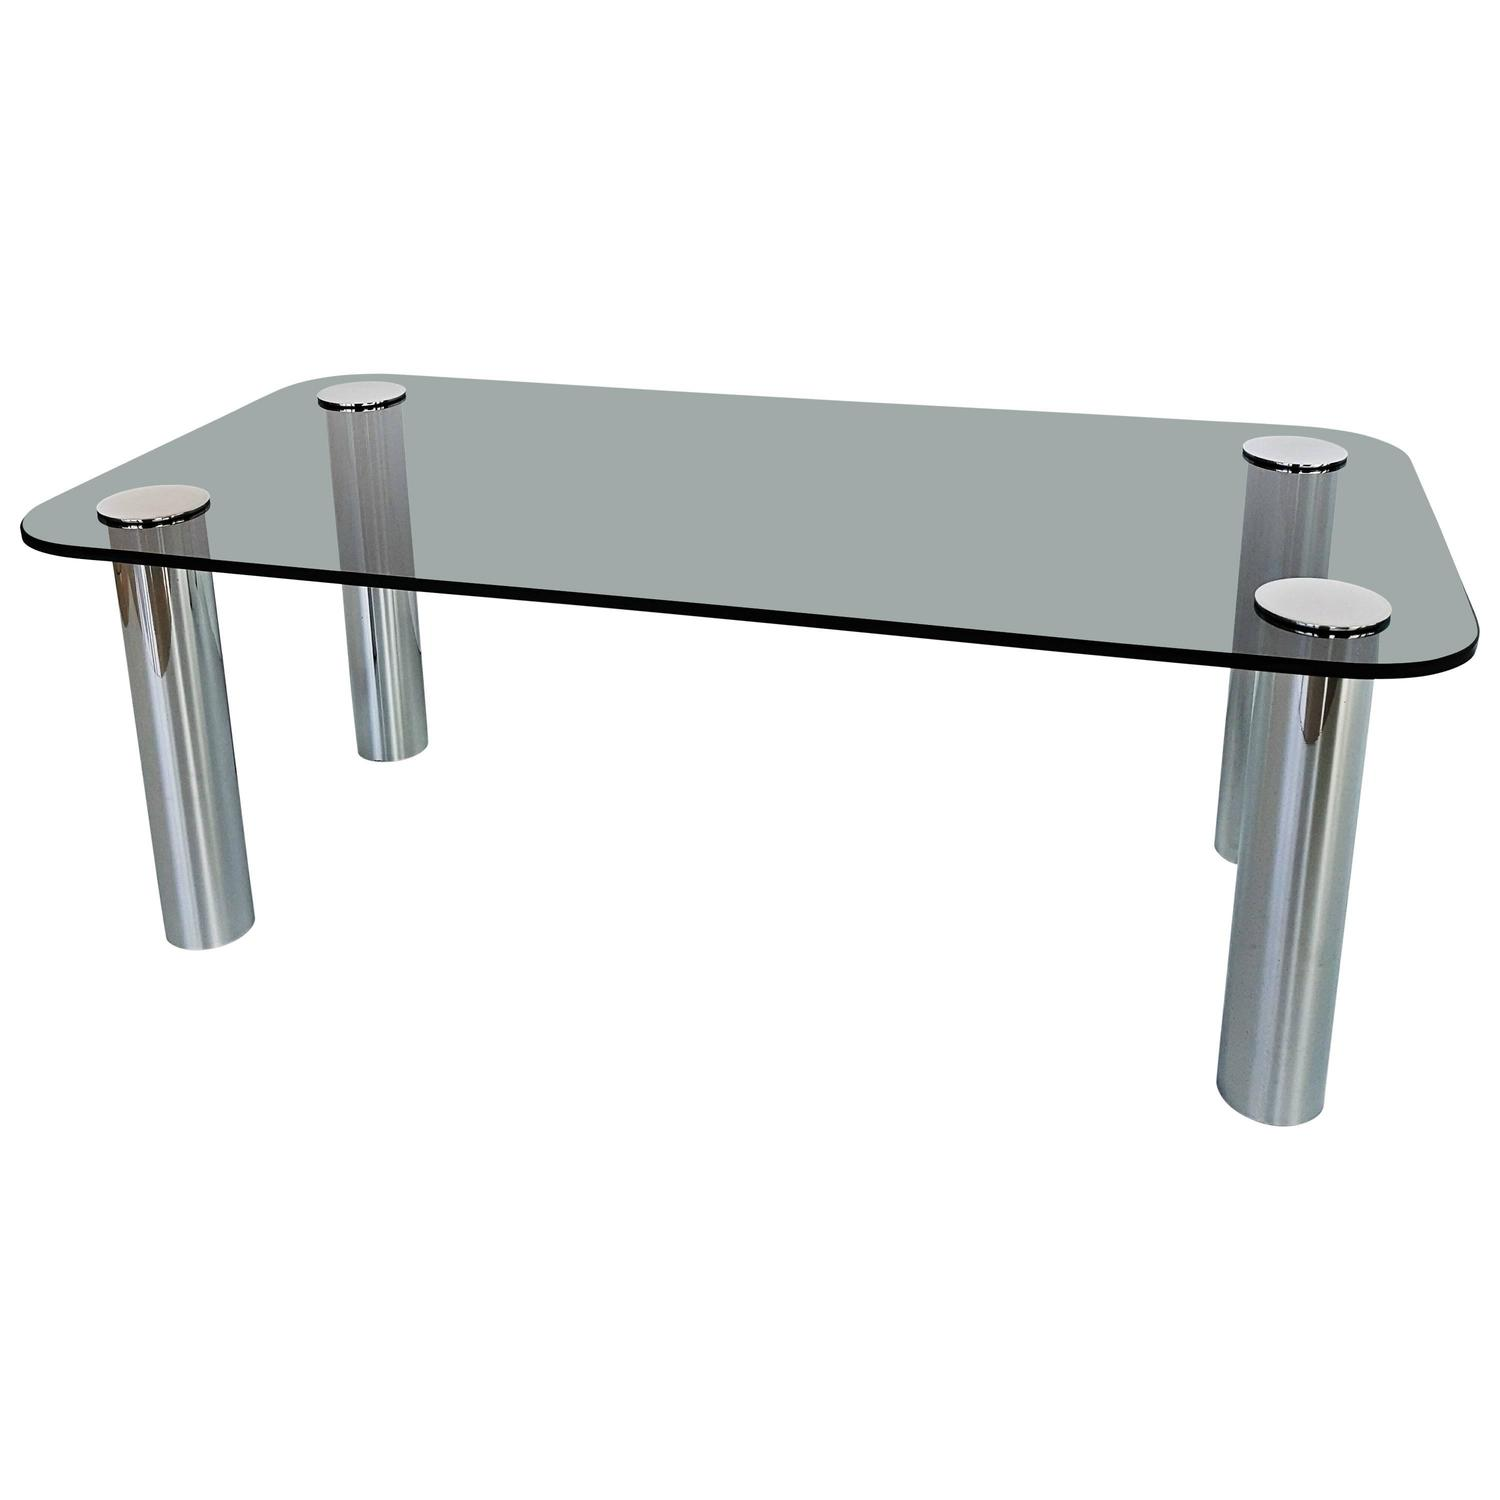 Zanotta tables 14 for sale at 1stdibs coffee table by marco zanuso for zanotta 1970s greentooth Gallery